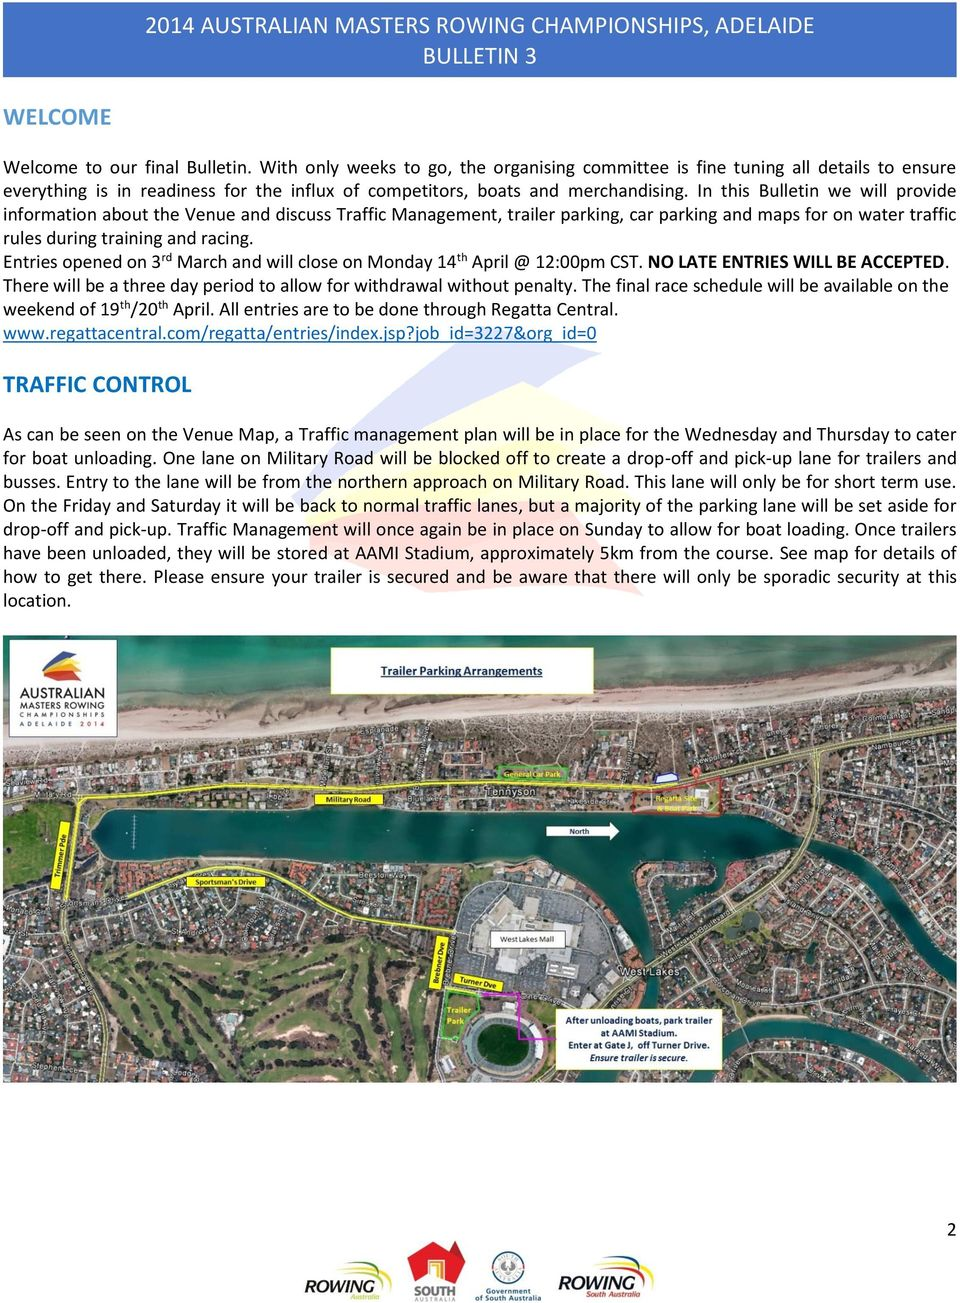 In this Bulletin we will provide information about the Venue and discuss Traffic Management, trailer parking, car parking and maps for on water traffic rules during training and racing.